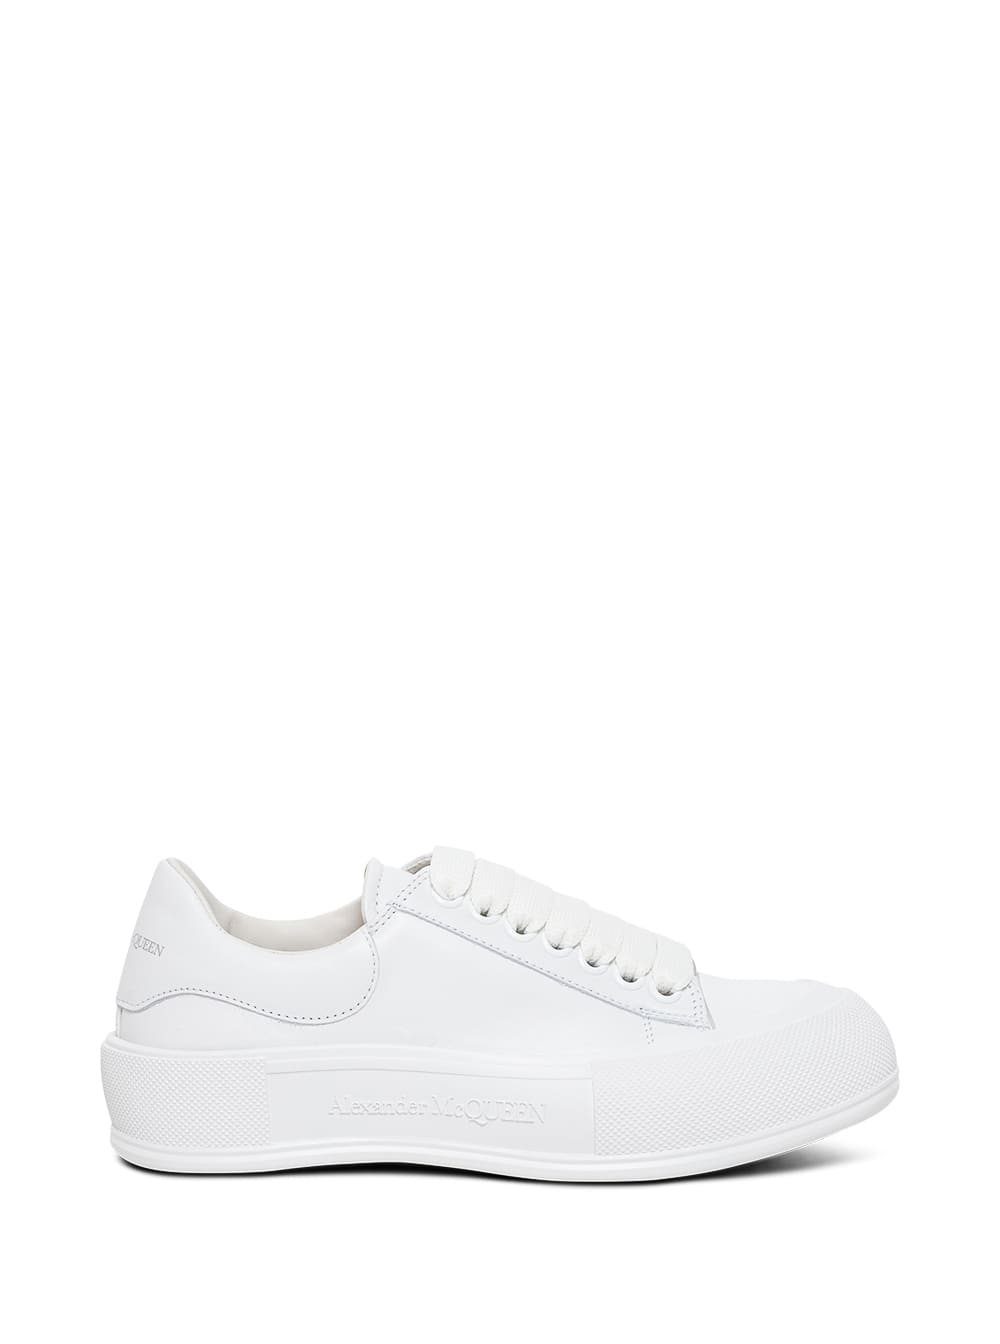 Alexander McQueen White Leather Skate Sneakers With Logo